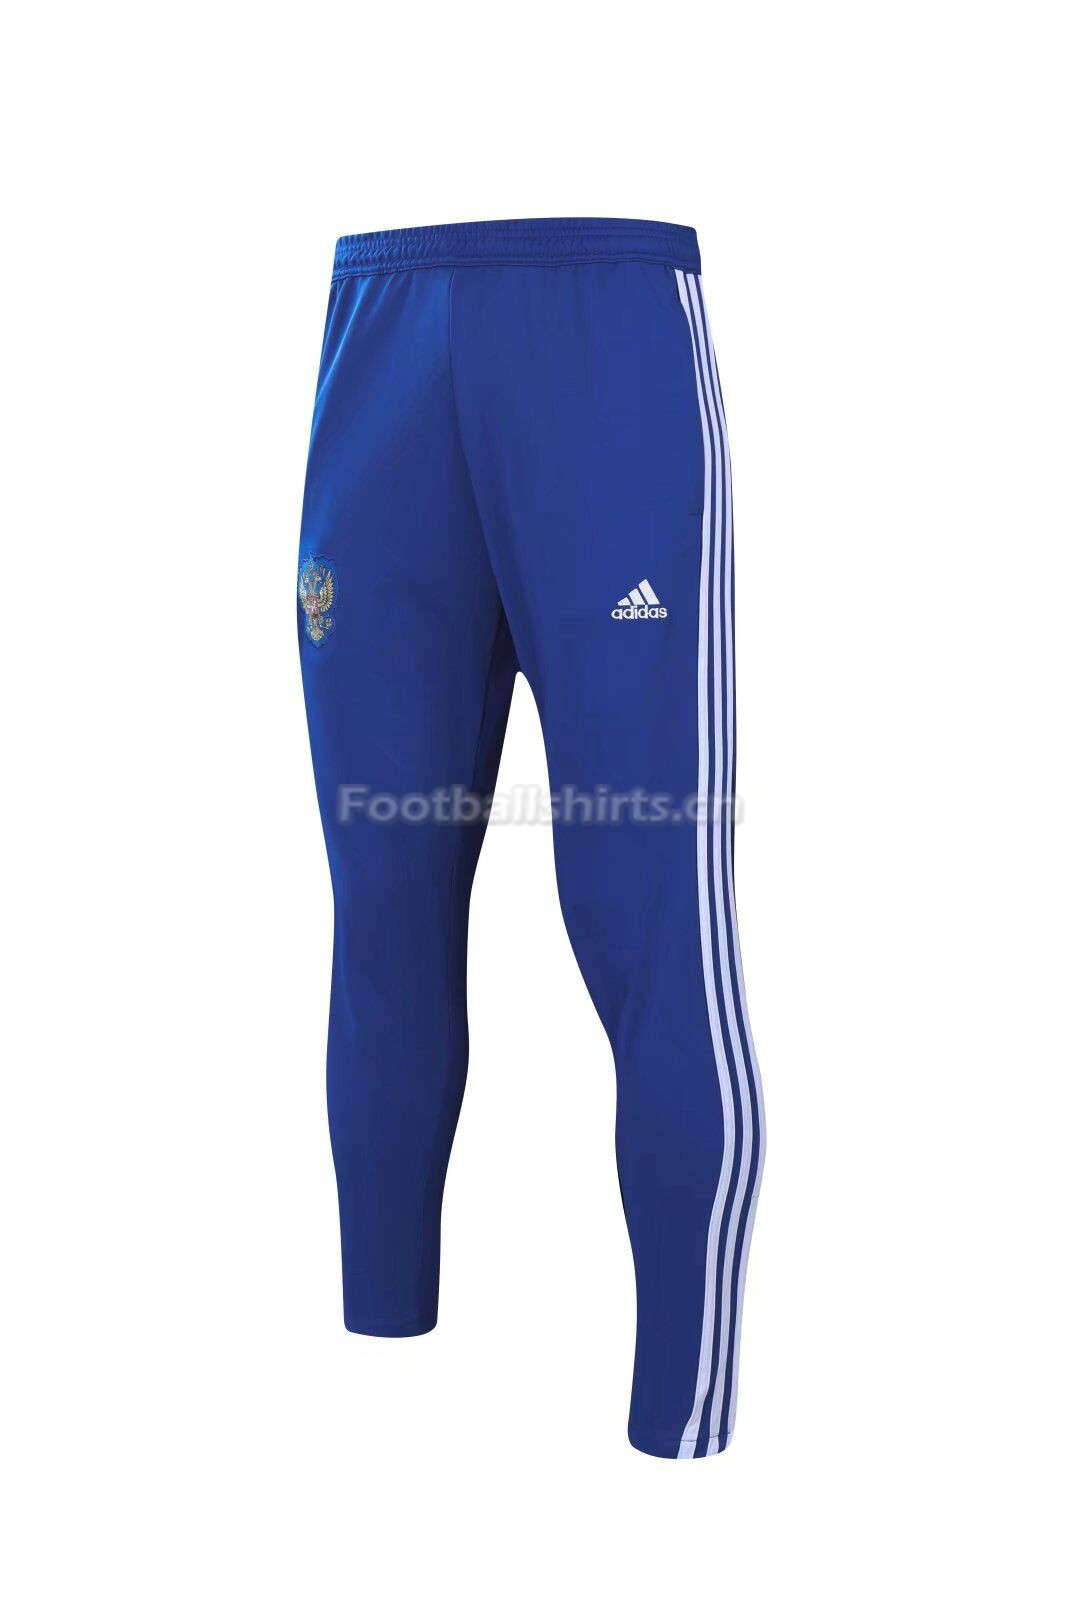 Russia World Cup 2018 Blue Training Pants White Stripe